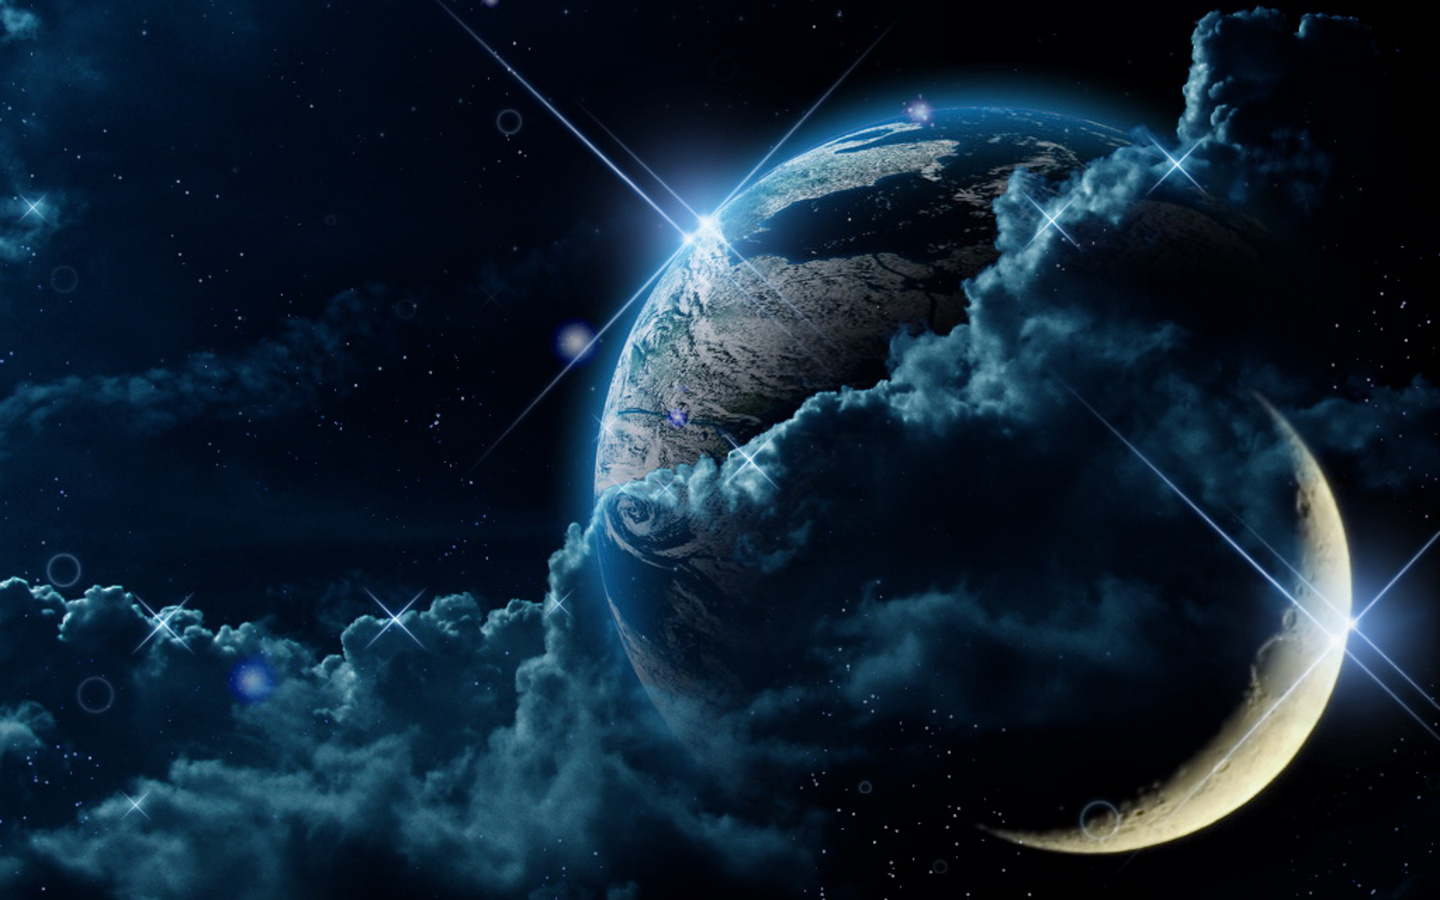 ... space free desktop wallpaper download fantasy mysterious space free